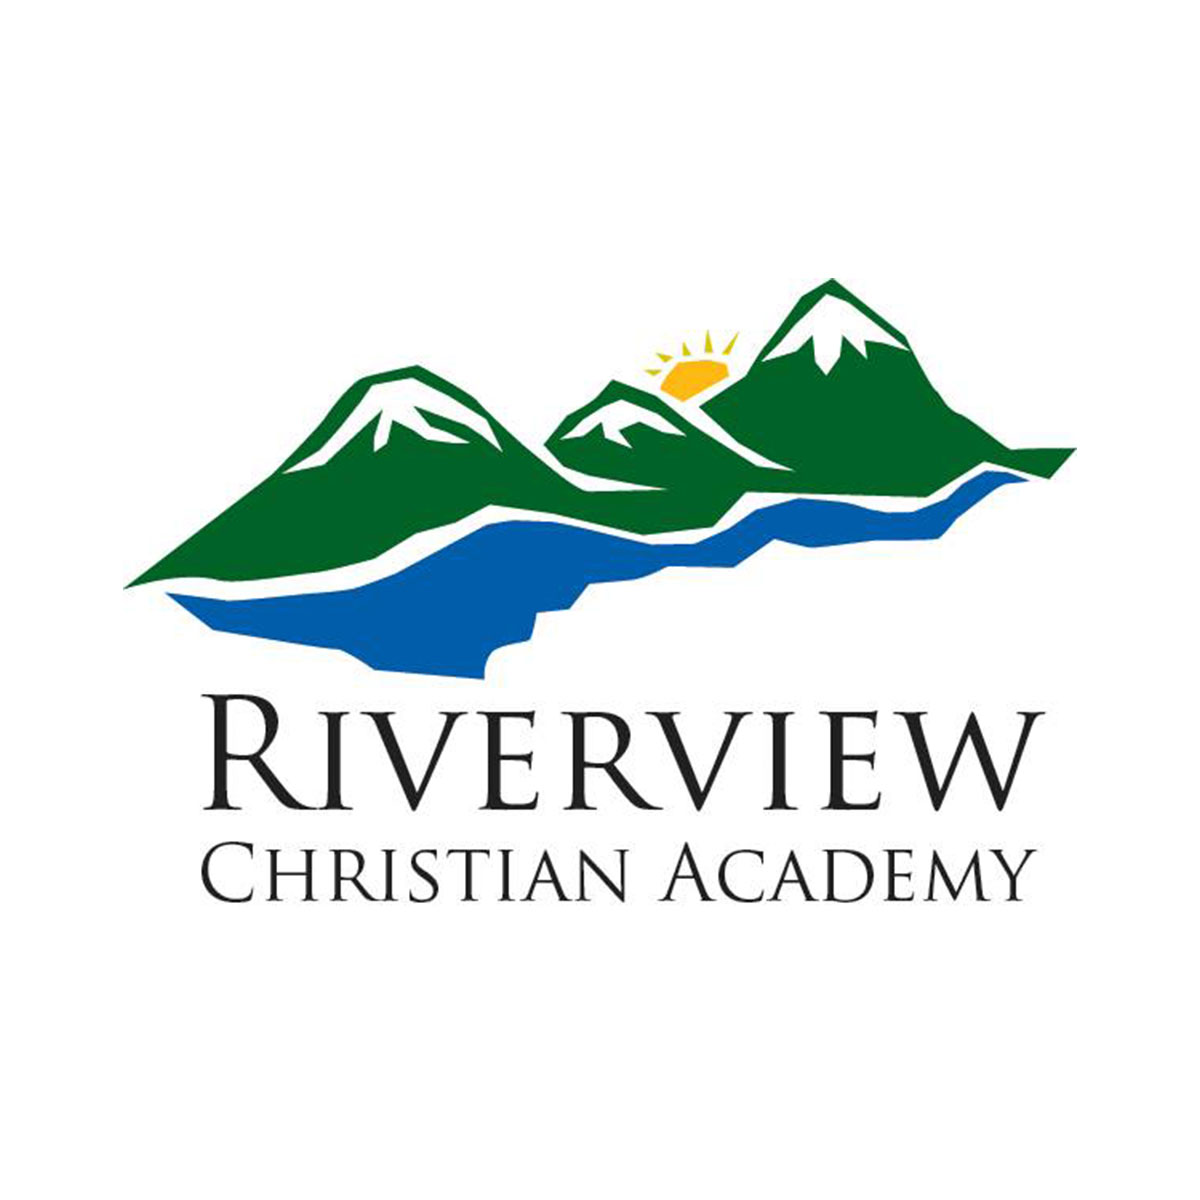 Riverview Christian Academy Grades 5-8 Compete to Raise Money for Their Adventurous 4 Day Field Trip Exploring Geological Sites